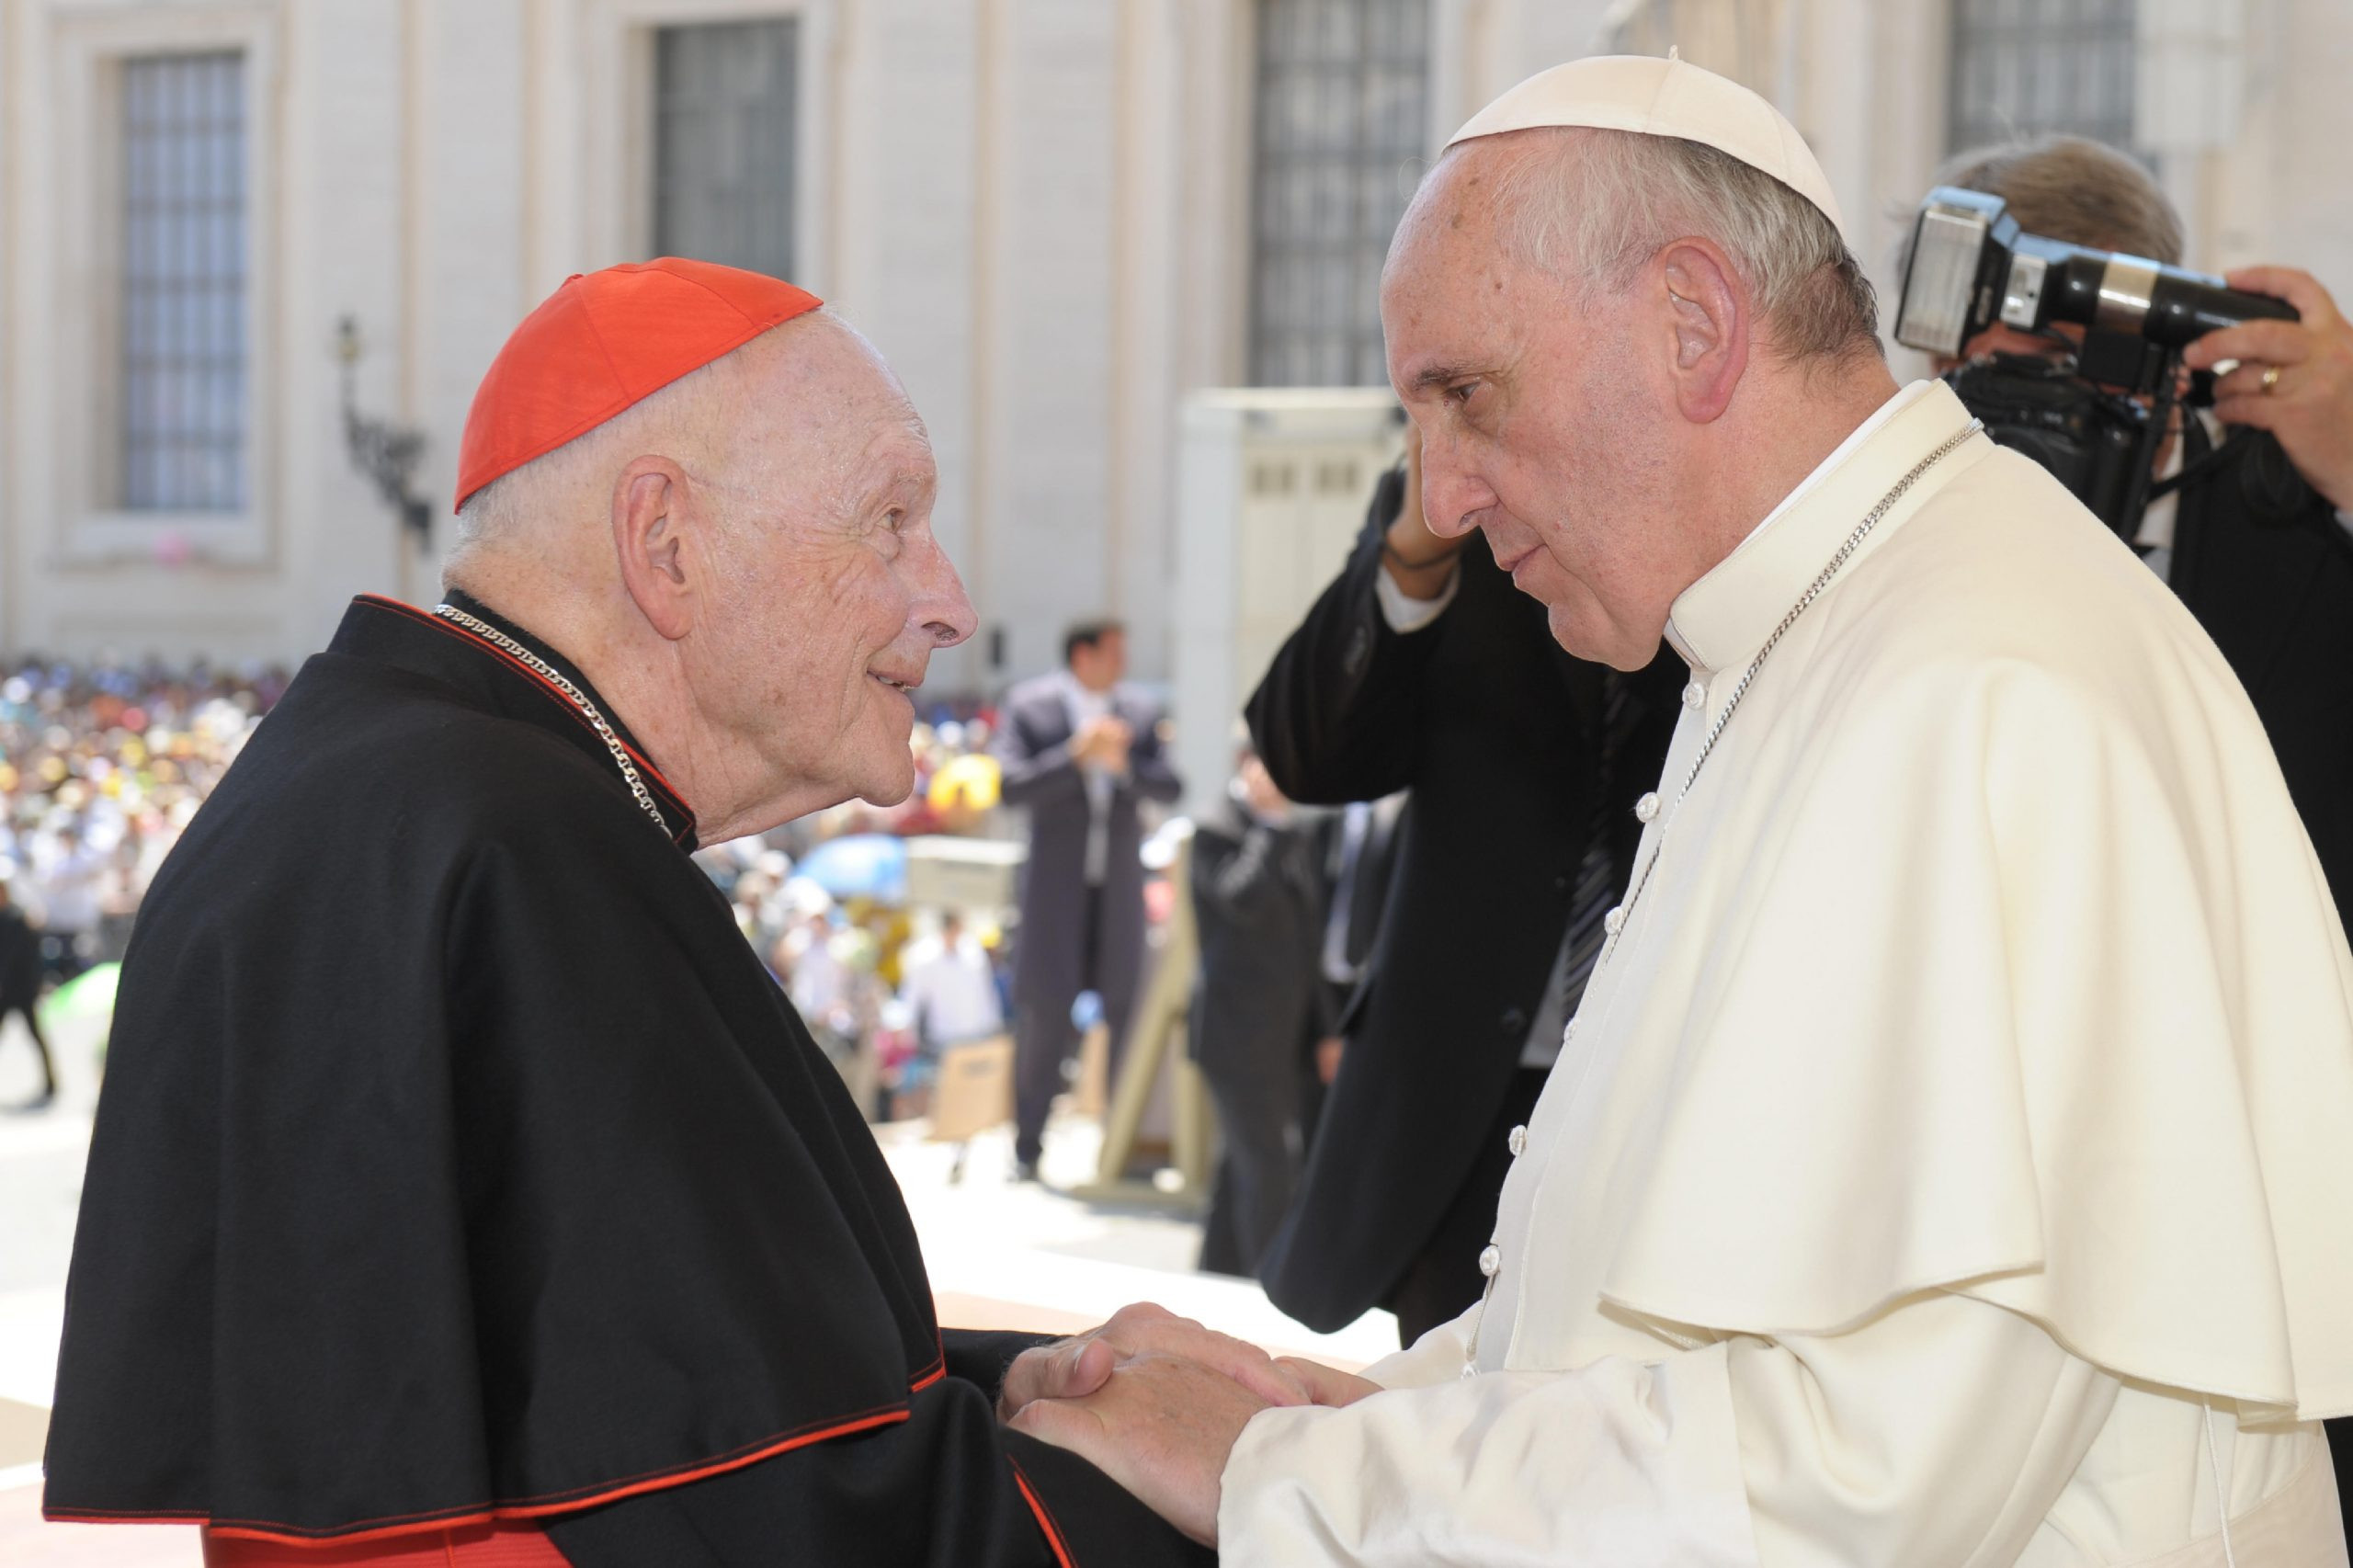 Court papers reveal former Catholic Archbishop, Theodore McCarrick?took down pants of boy, 14, held and kissed his genitalia and said prayers